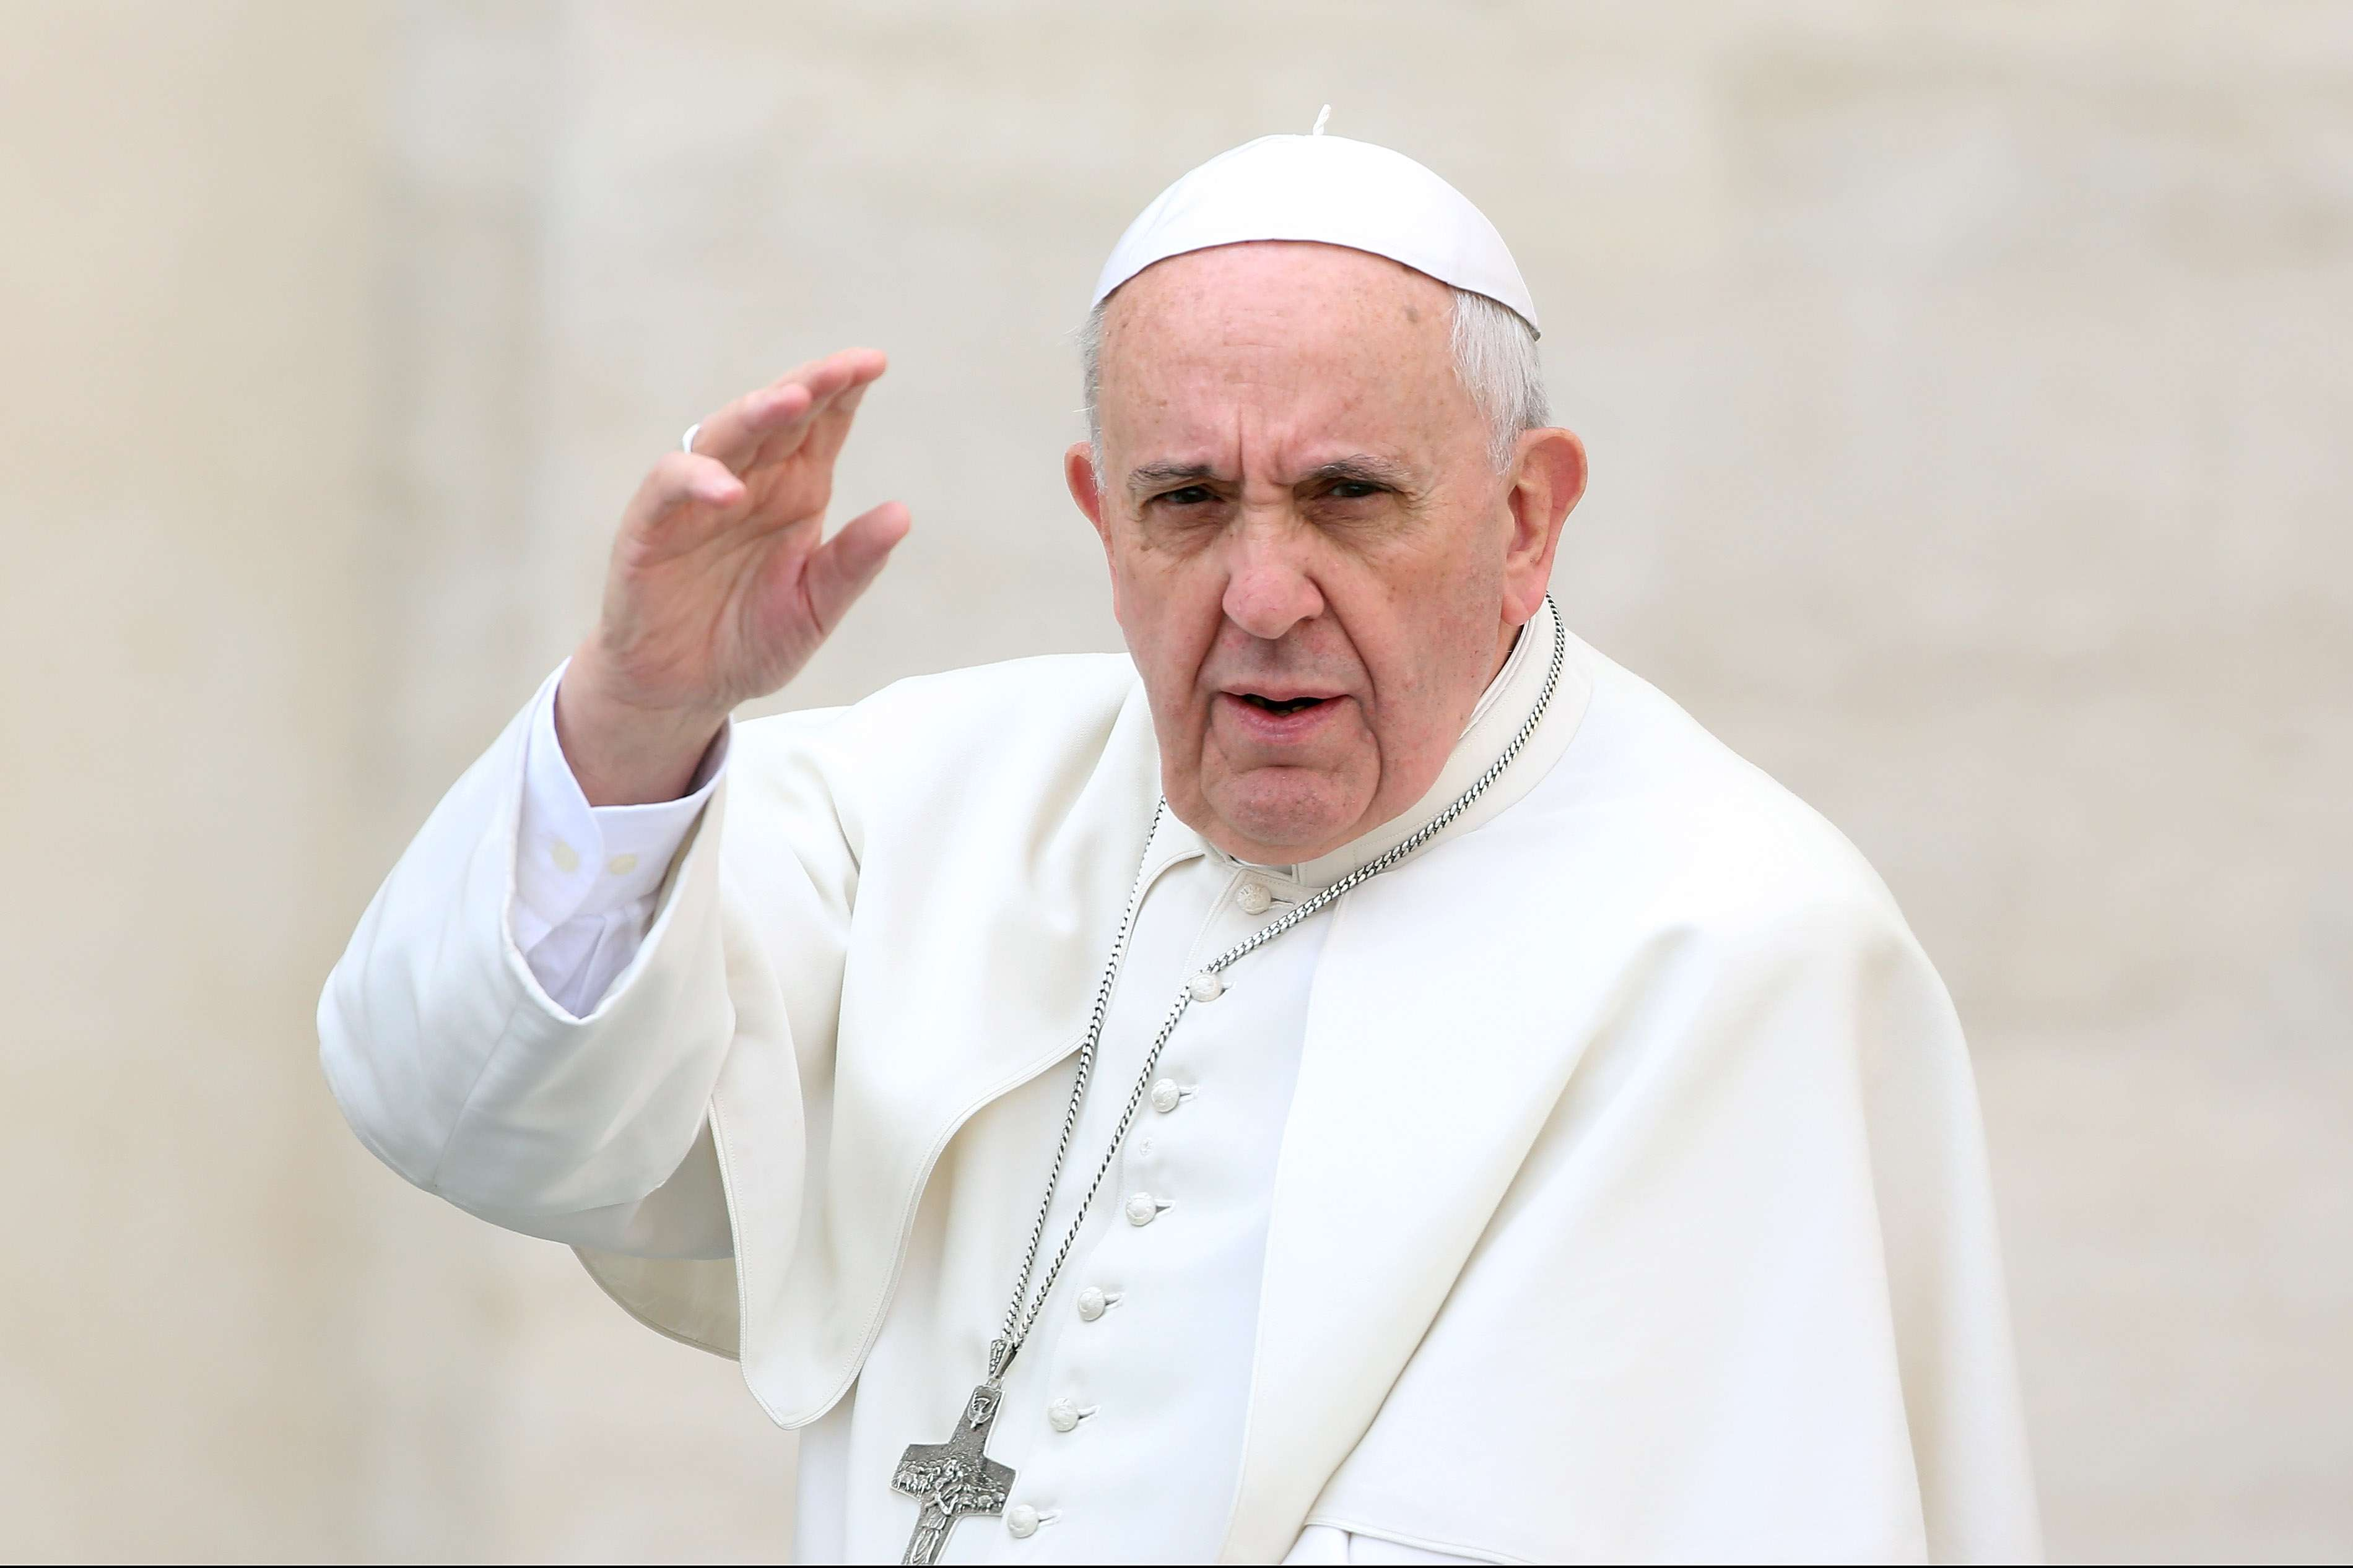 Vatican says Pope Francis misrepresented in '2% of priests are peadophiles' story